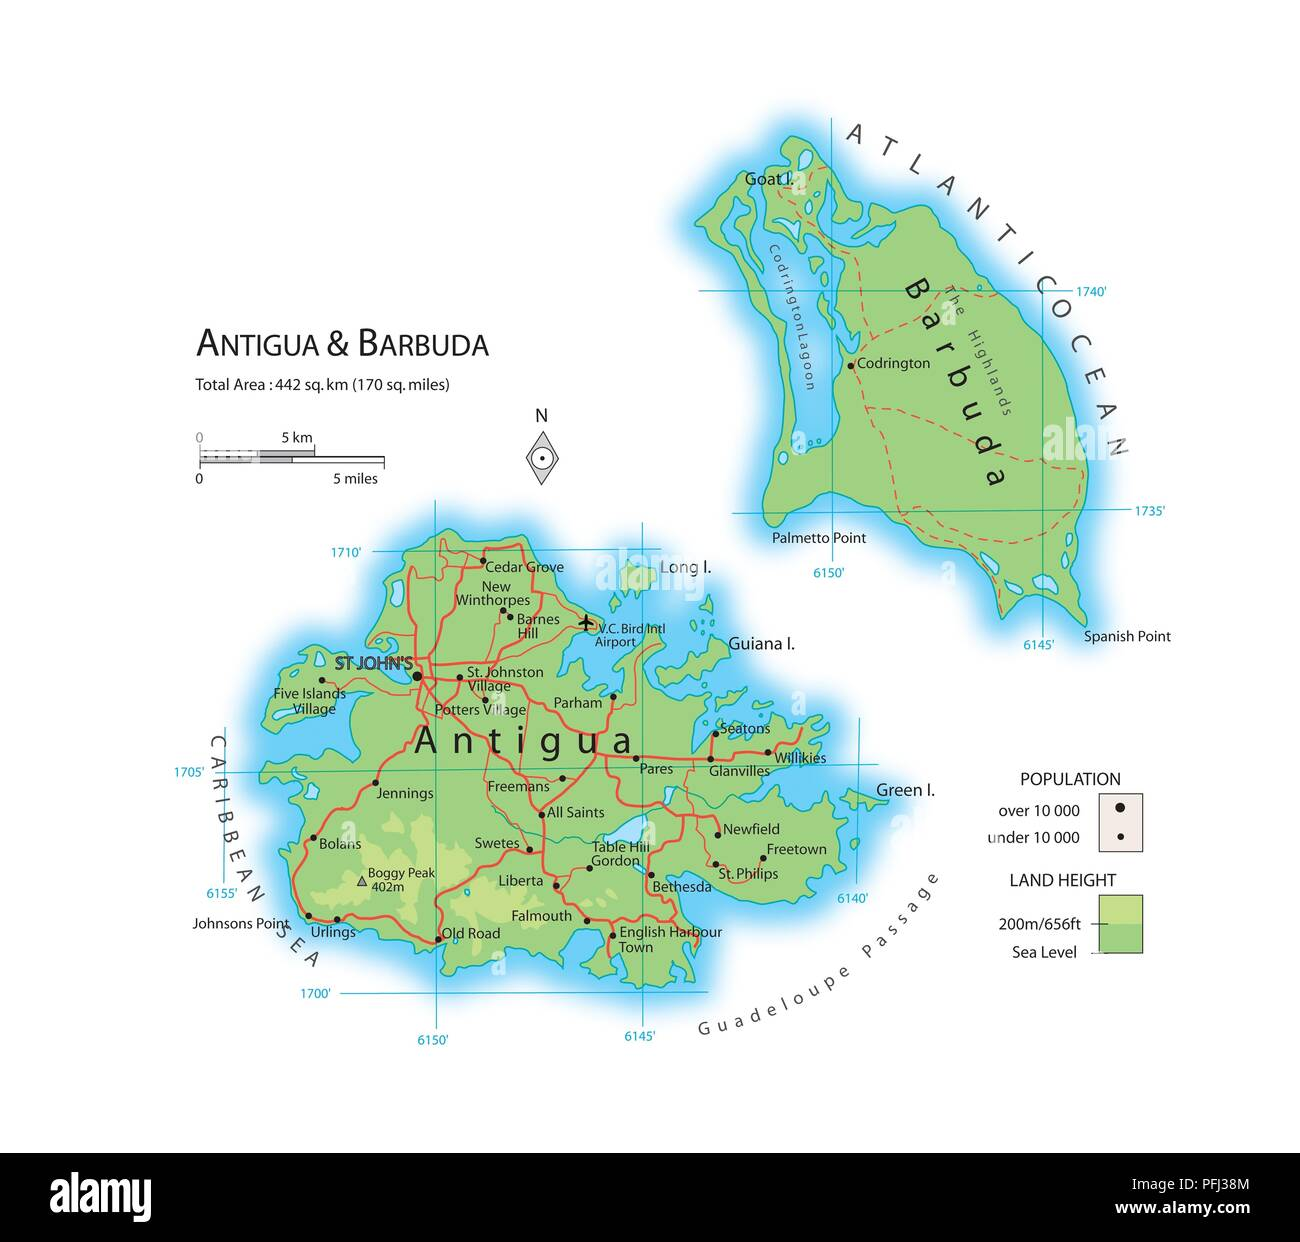 Map of Antigua and Barbuda Stock Photo: 216141988 - Alamy A Map Of Antigua on a map of estonia, a map of st.thomas, a map of moldova, a map of san juan puerto rico, a map of tuvalu, a map of nevis, a map of galapagos, a map of the leeward islands, a map of vanuatu, a map of st. lucia, a map of andorra, a map of santo domingo, a map of french polynesia, a map of windward islands, a map of anguilla, a map of los cabos, a map of st vincent, a map of seychelles, a map of kazakhstan, a map of jersey,